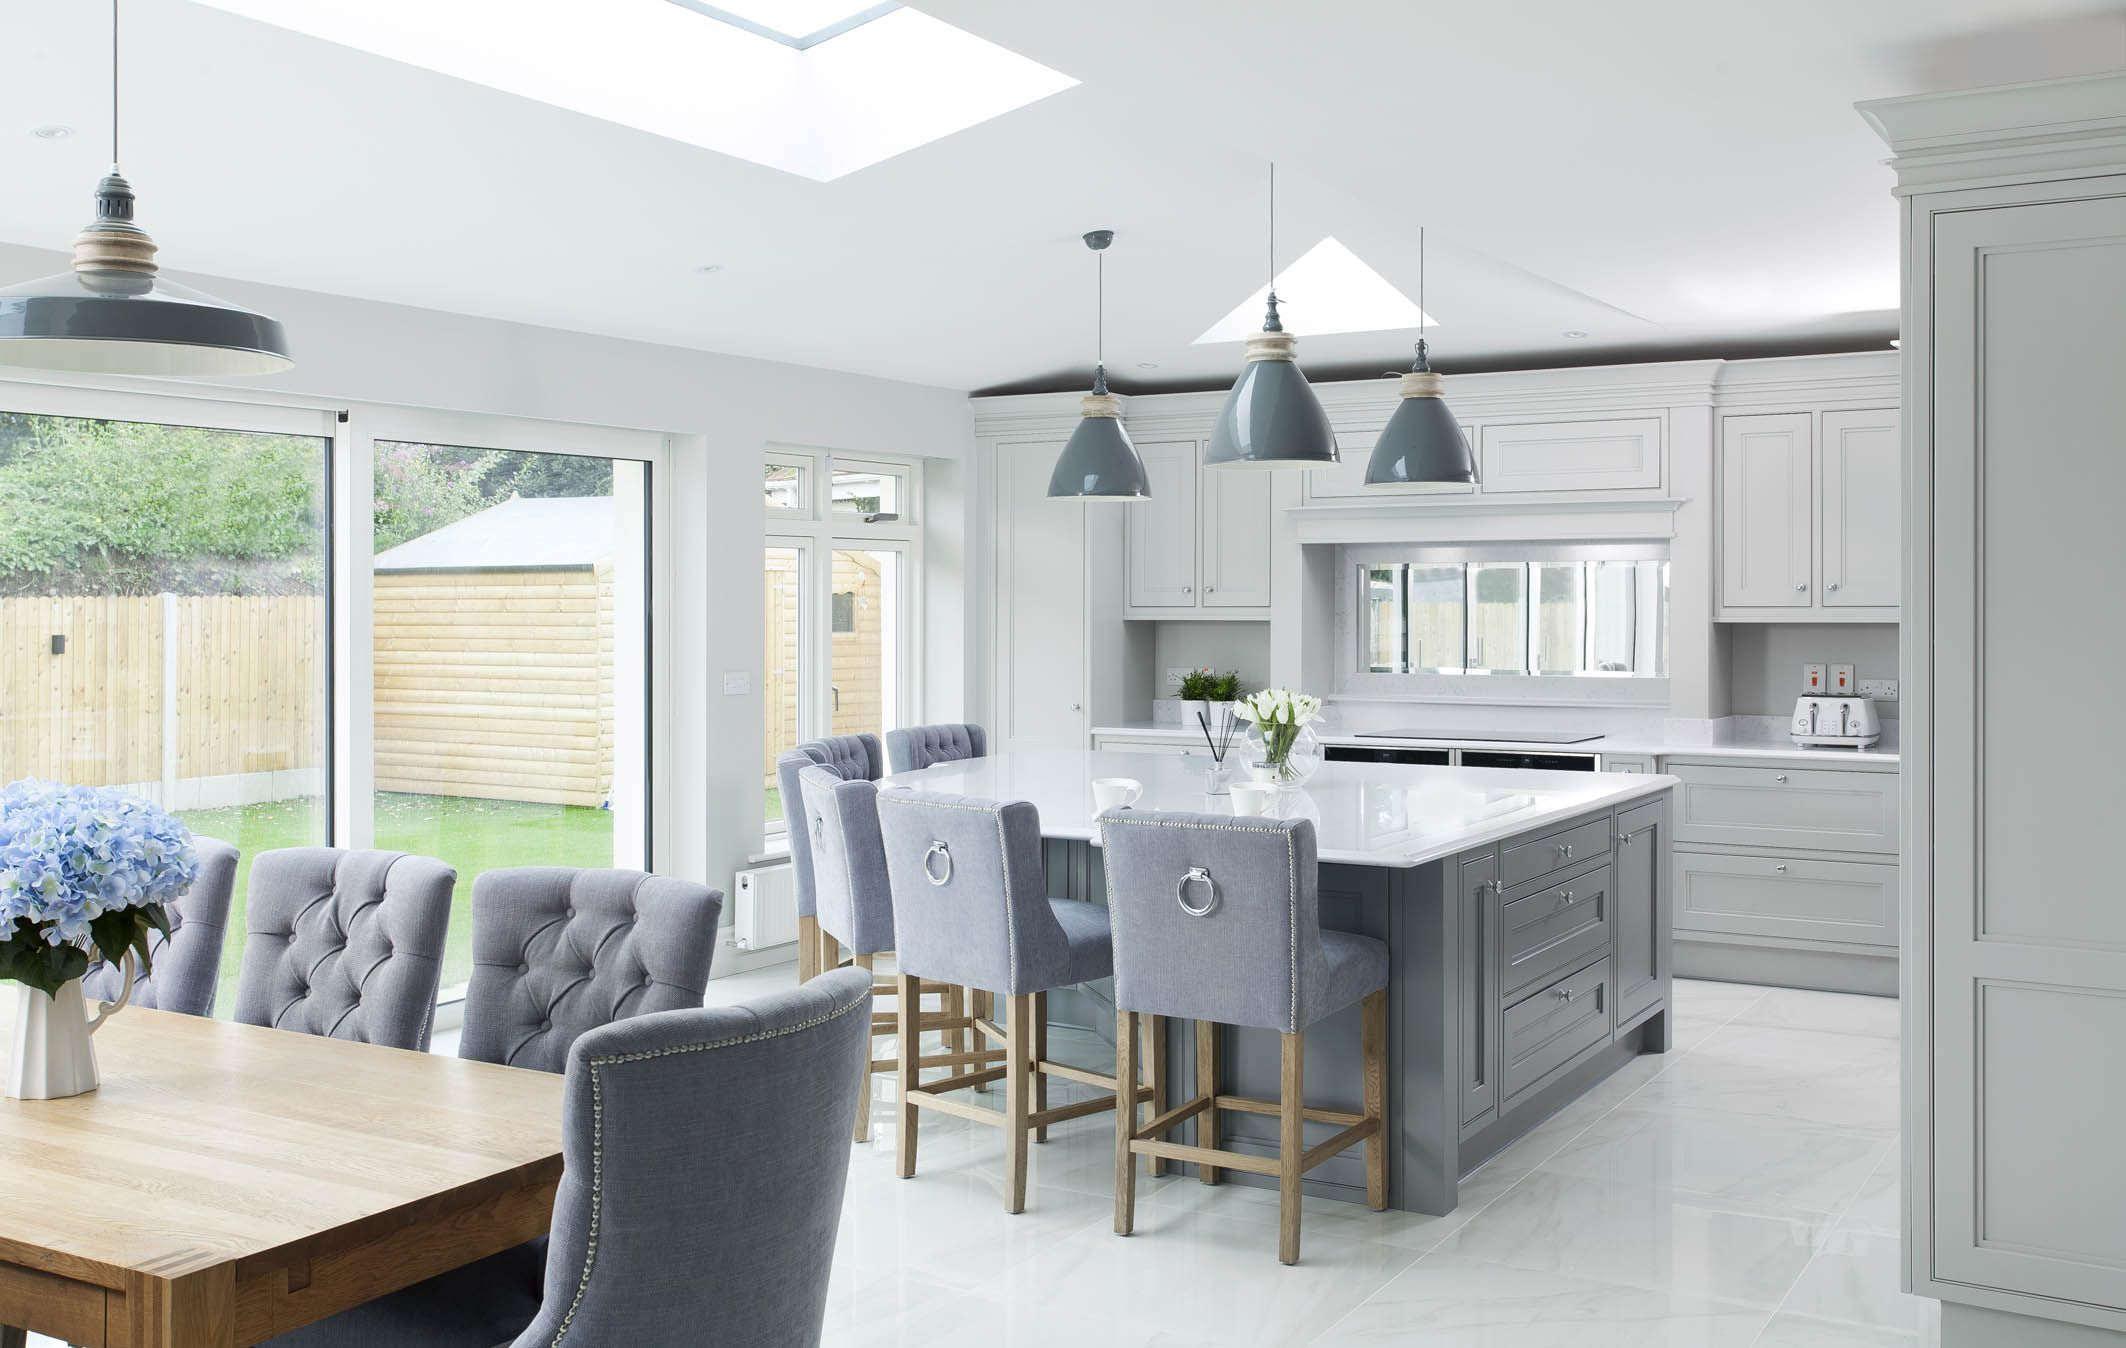 Grey, white and Oak kitchen | leicht kitchen | Pinterest | Cornforth ...